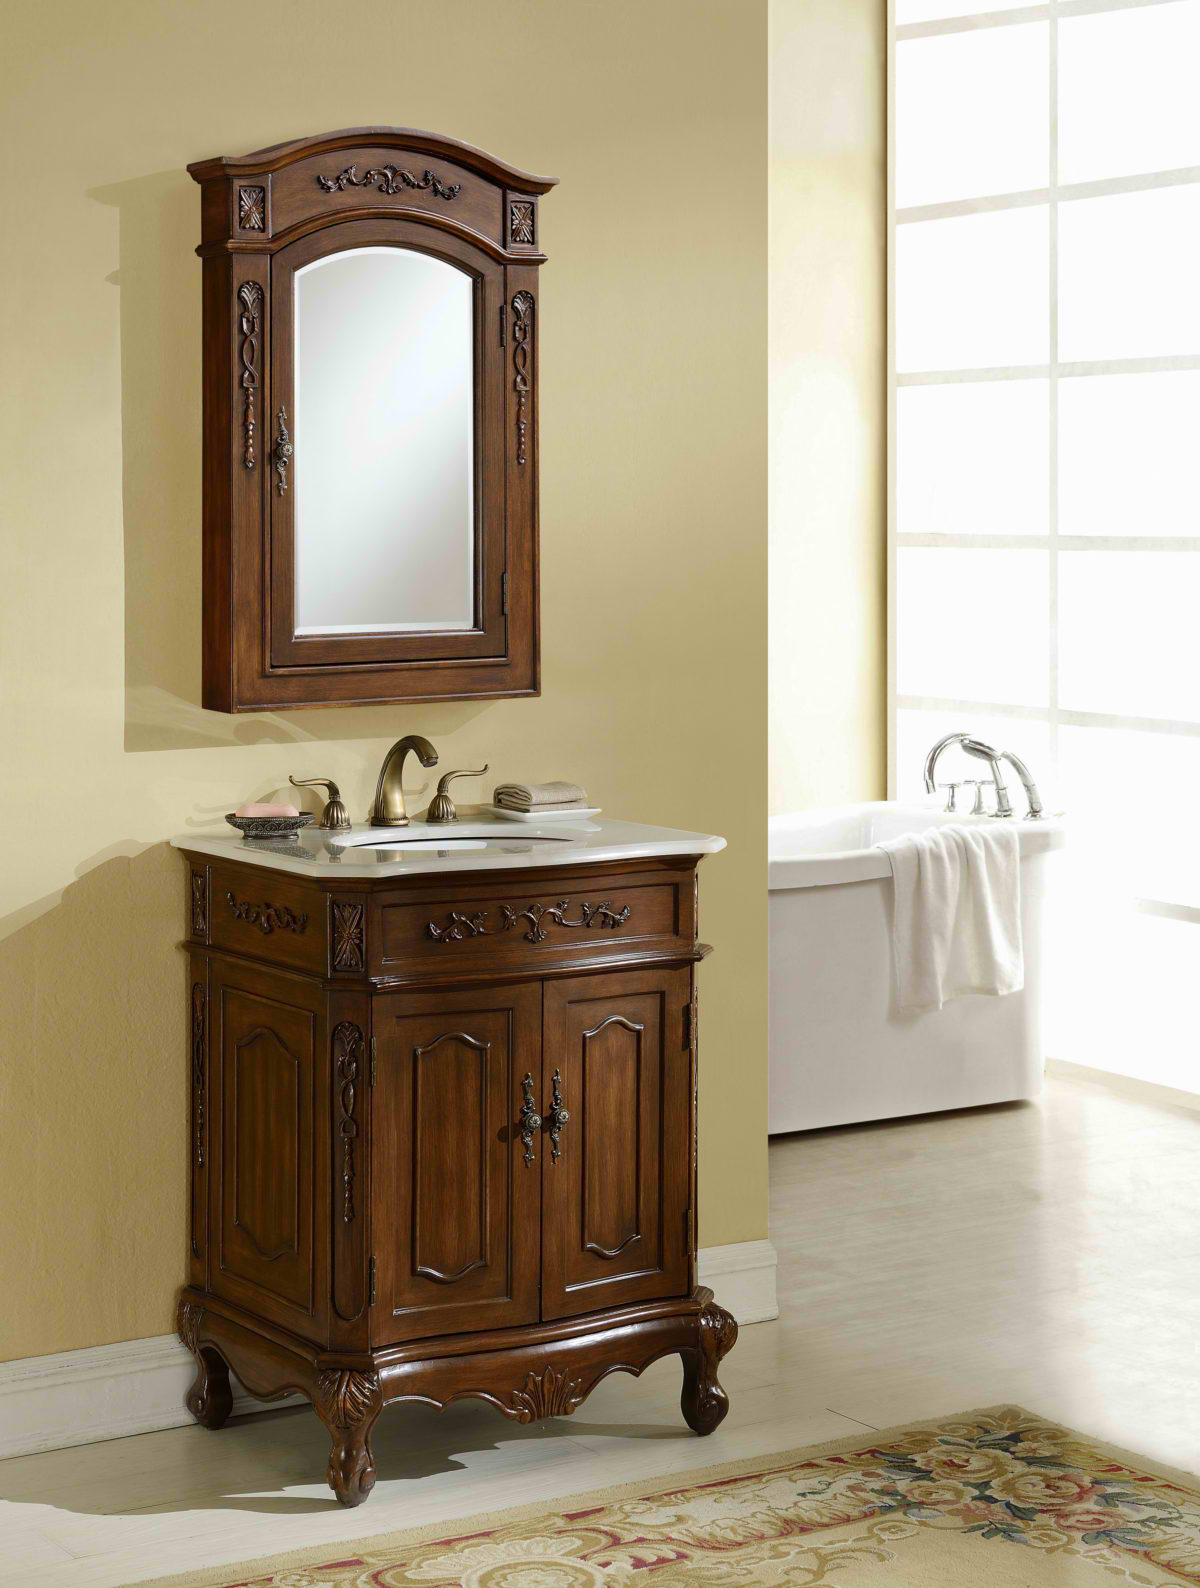 "27"" Deep Chestnut Finish Vanity, 2 Marble Top Option with Matching Medicine Cabinet"